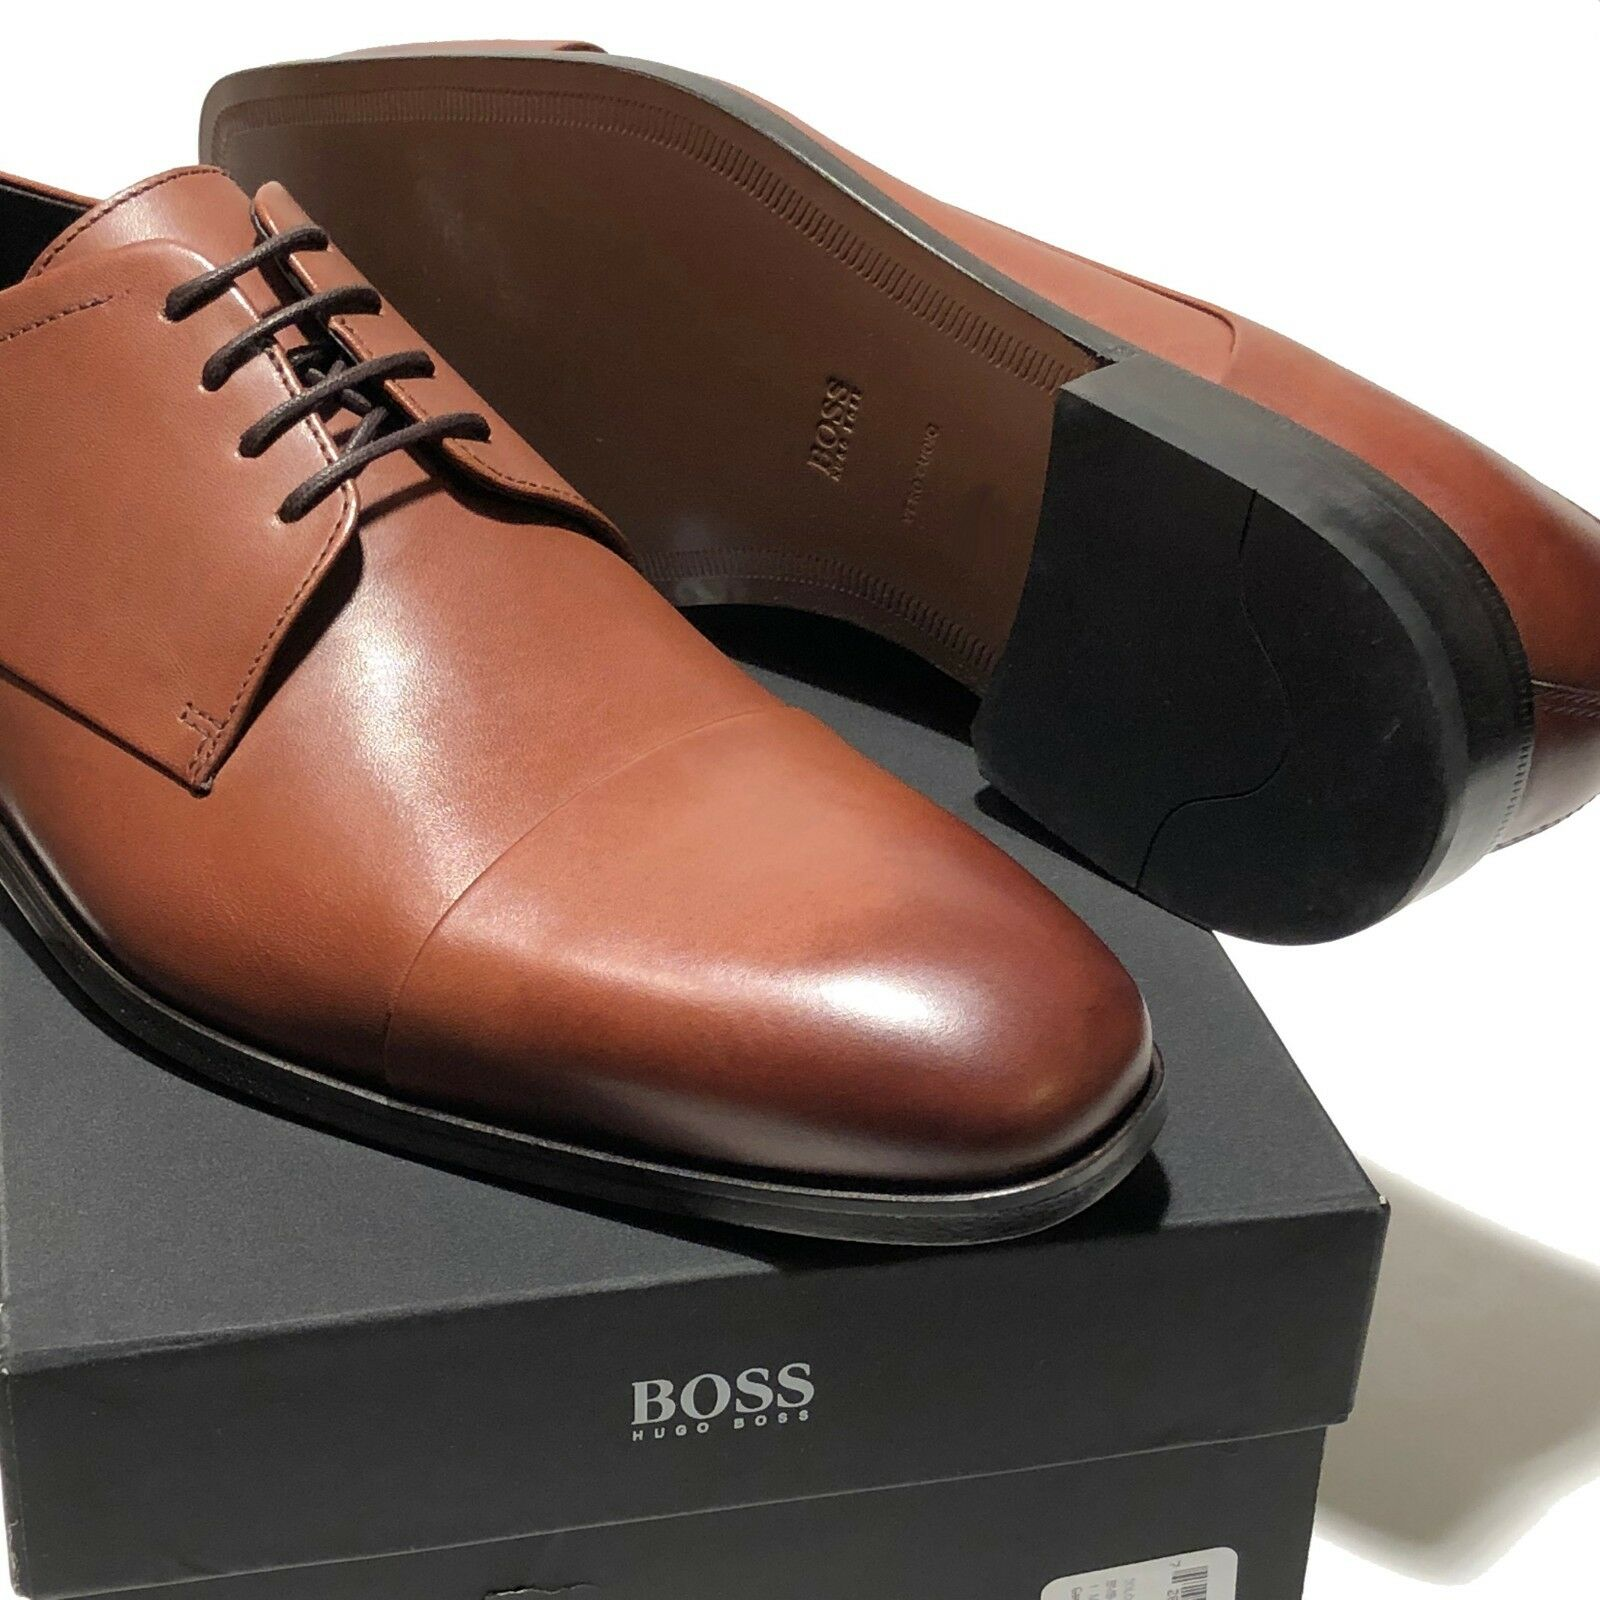 HUGO BOSS Brown Leather Cap-toe Men's Oxford 7 40  Dress Formal Fashion Casual